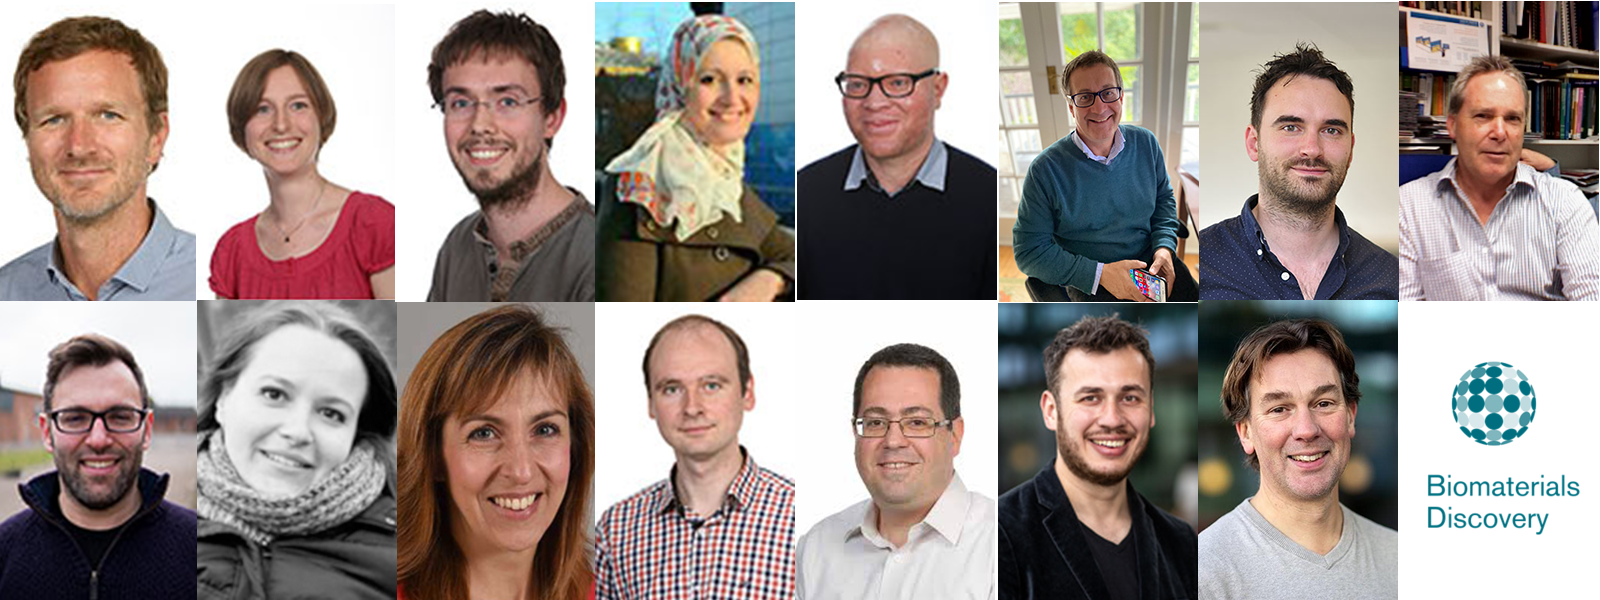 Images of the 15 blog authors